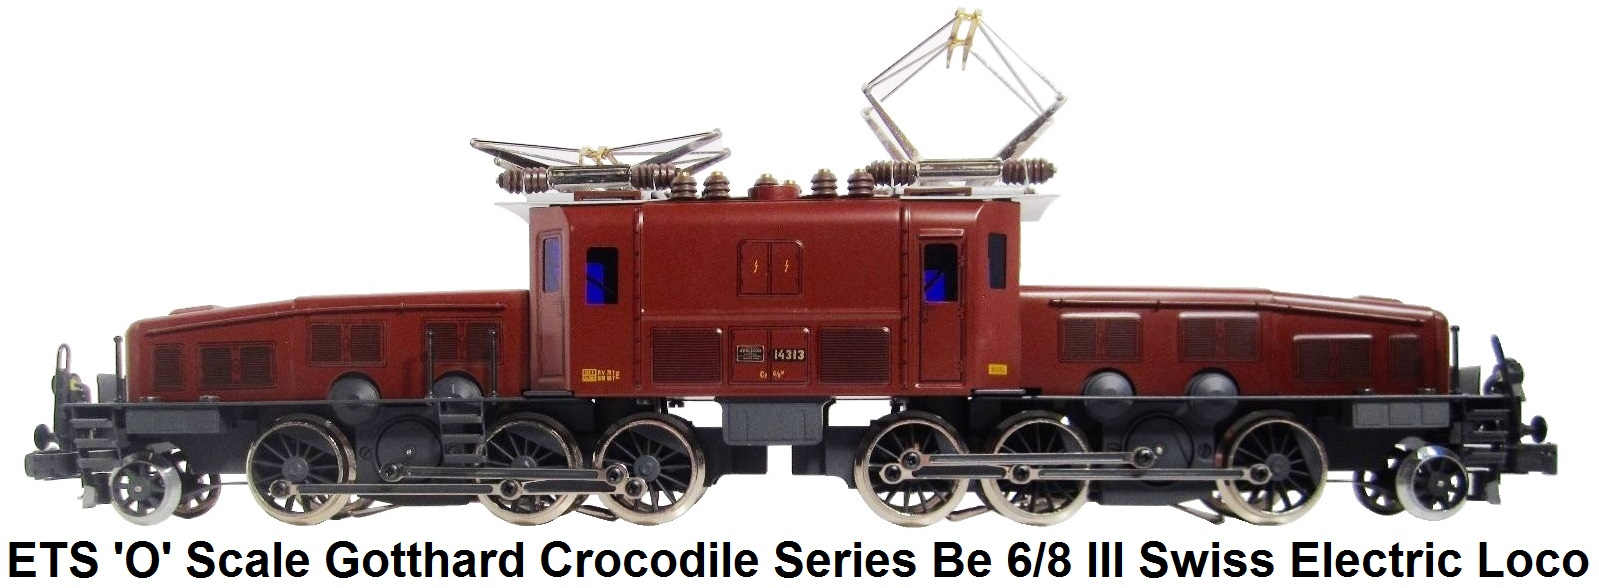 ETS 'O' gauge Gotthard Crocodile Series Be 6/8 III 207 Swiss Electric Loco